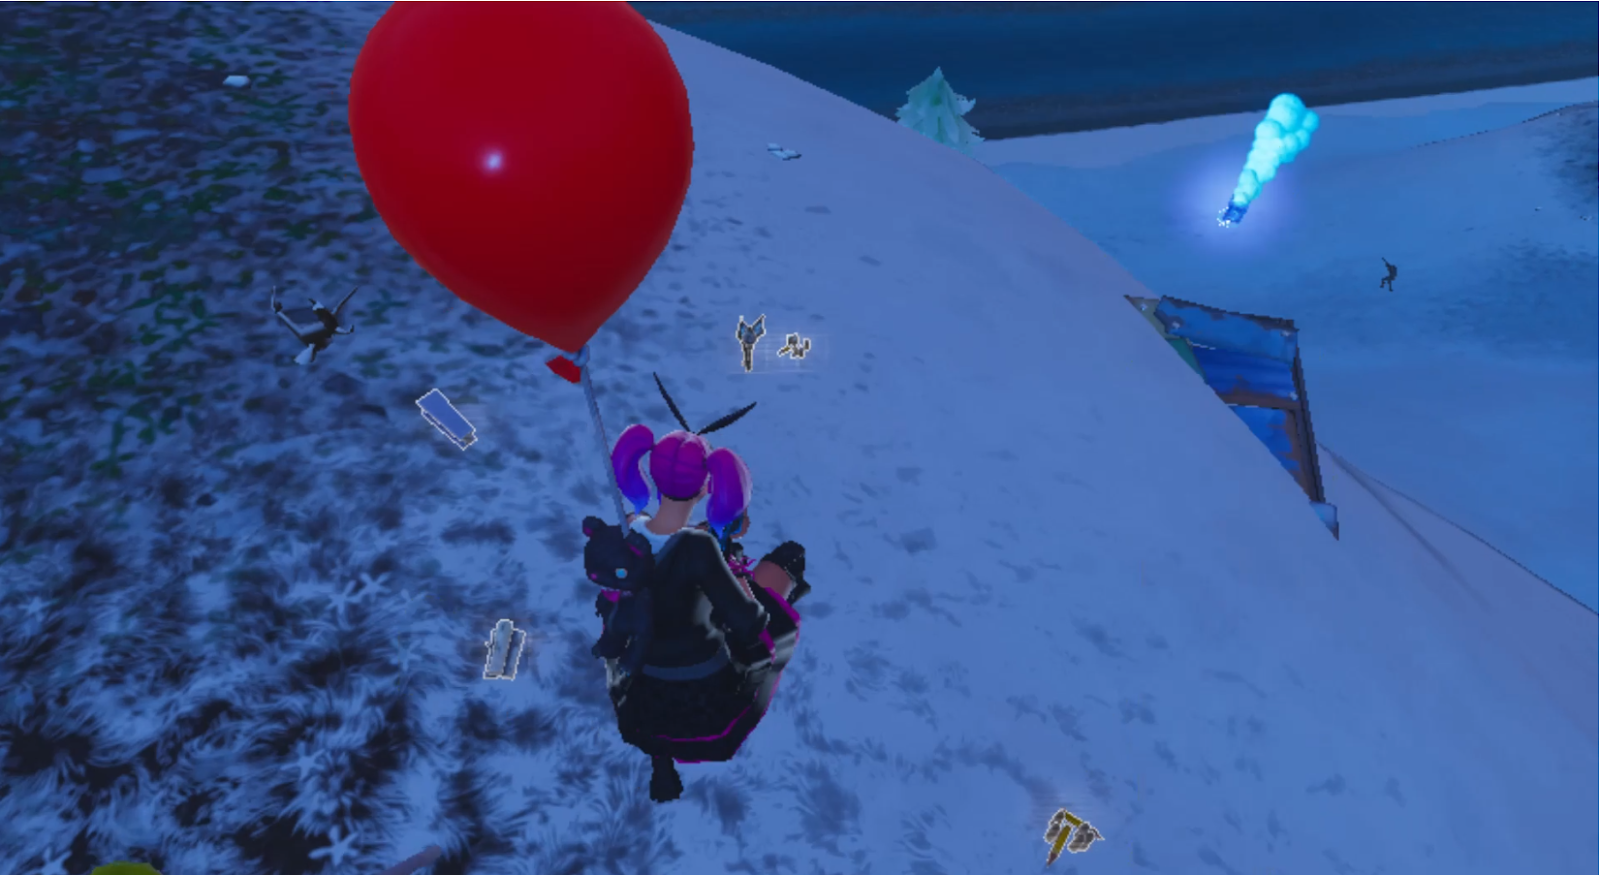 Fortnite Balloons Gameplay